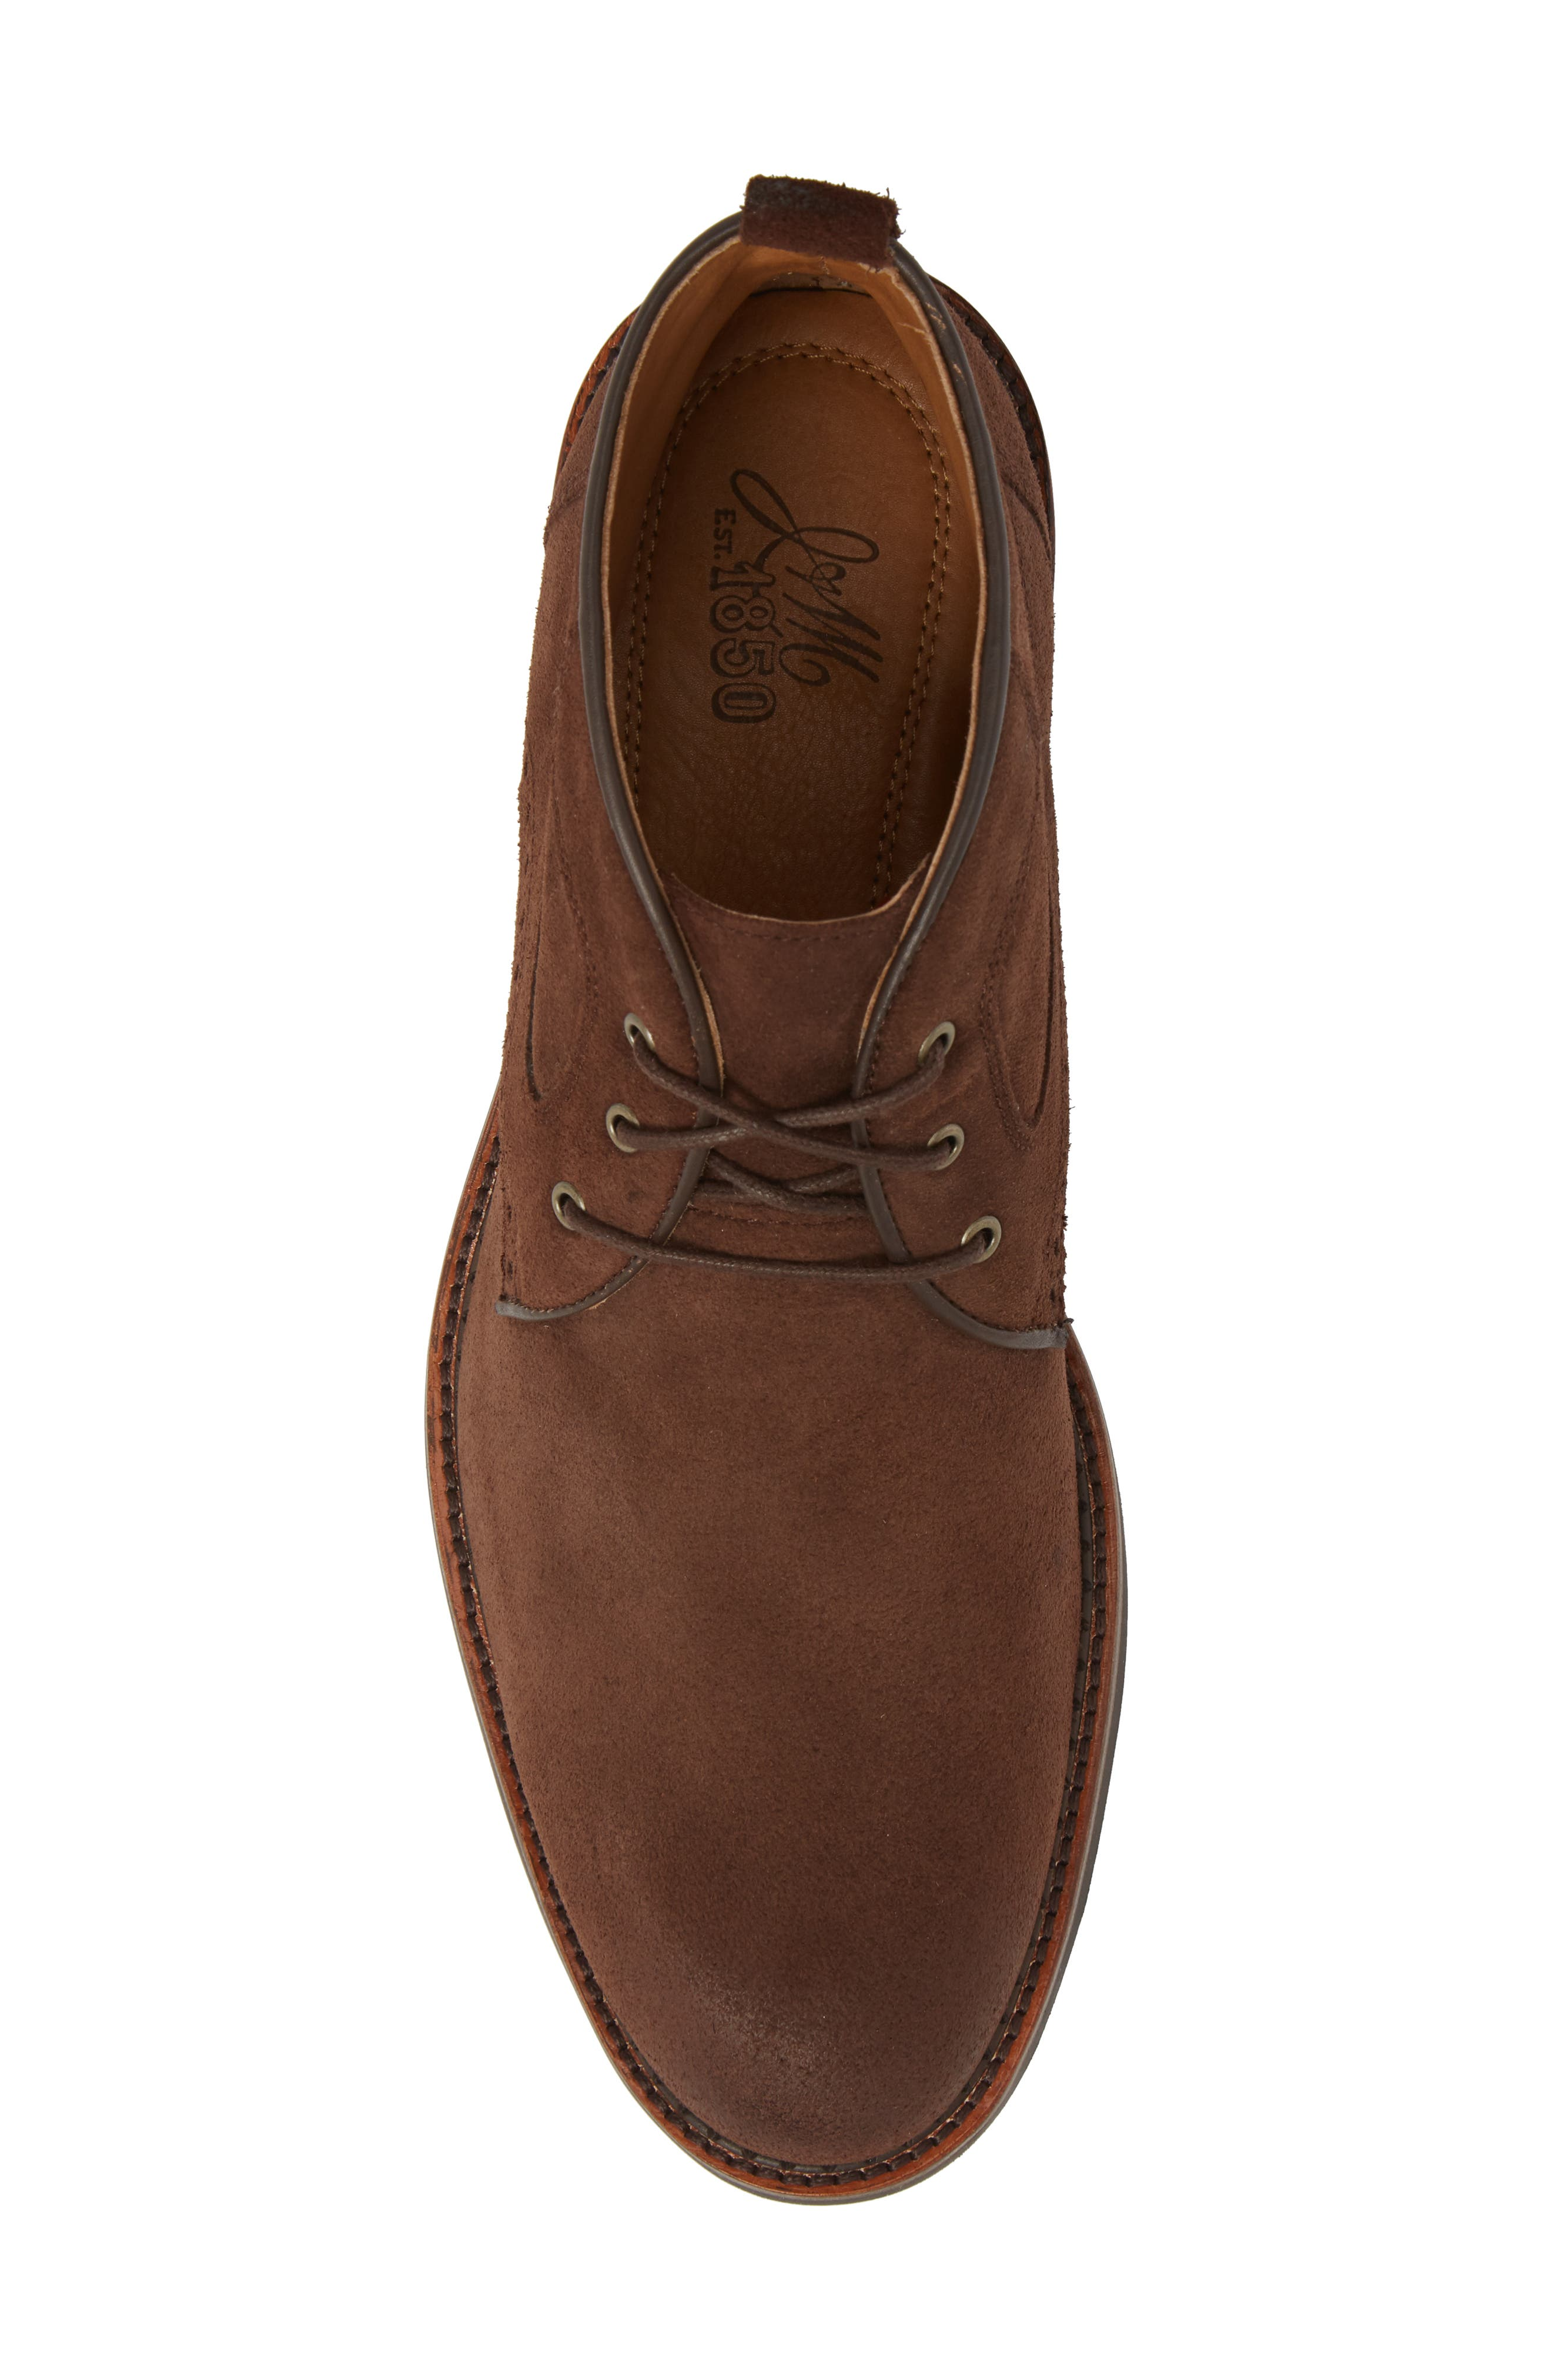 Fullerton Chukka Boot,                             Alternate thumbnail 5, color,                             DARK BROWN